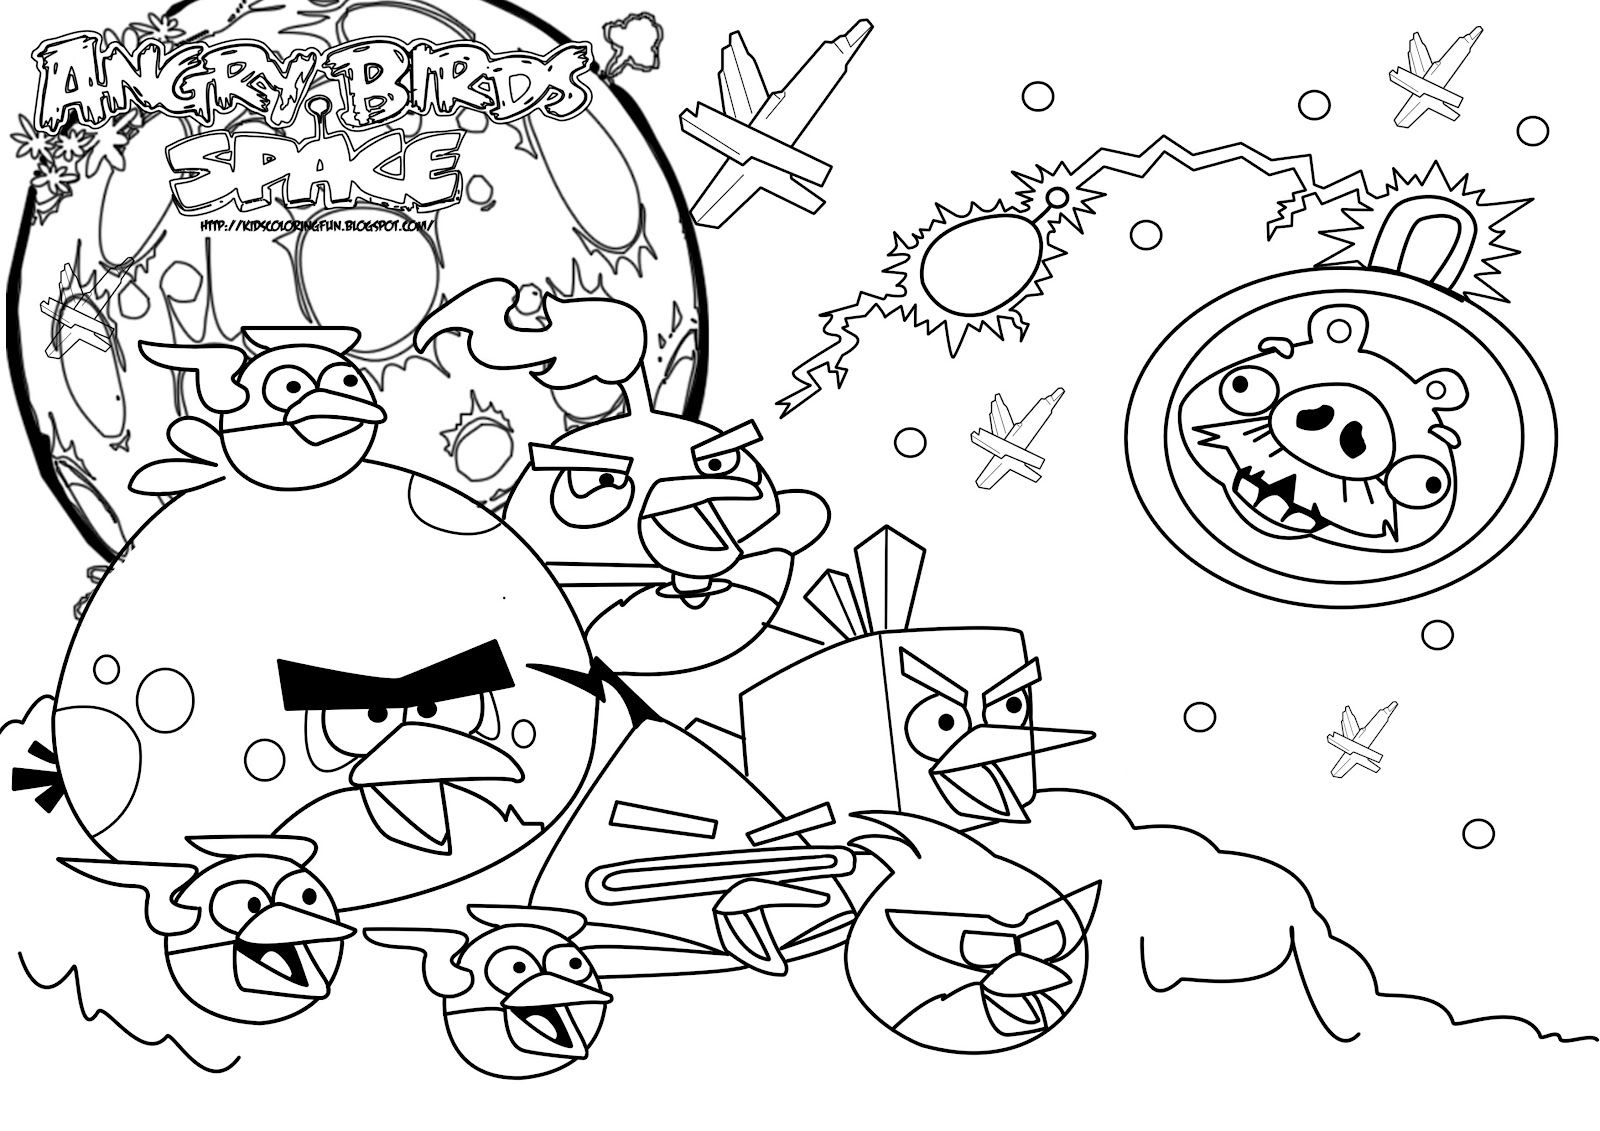 image about Angry Birds Printable Color Pages named totally free offended birds place coloring web pages I want this! Chook